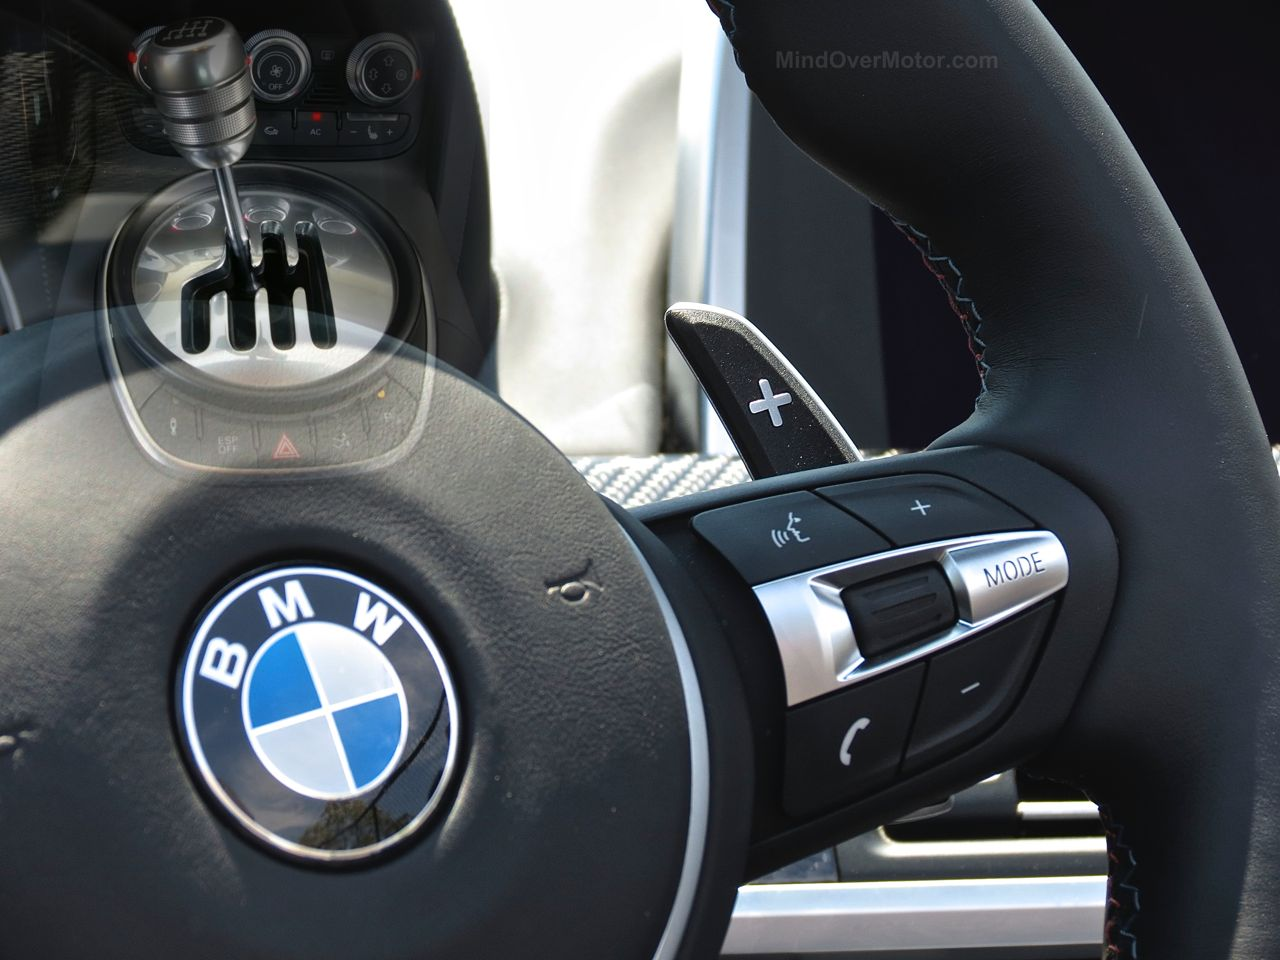 why is paddle shift killing the manual transmission and is it a rh mindovermotor com